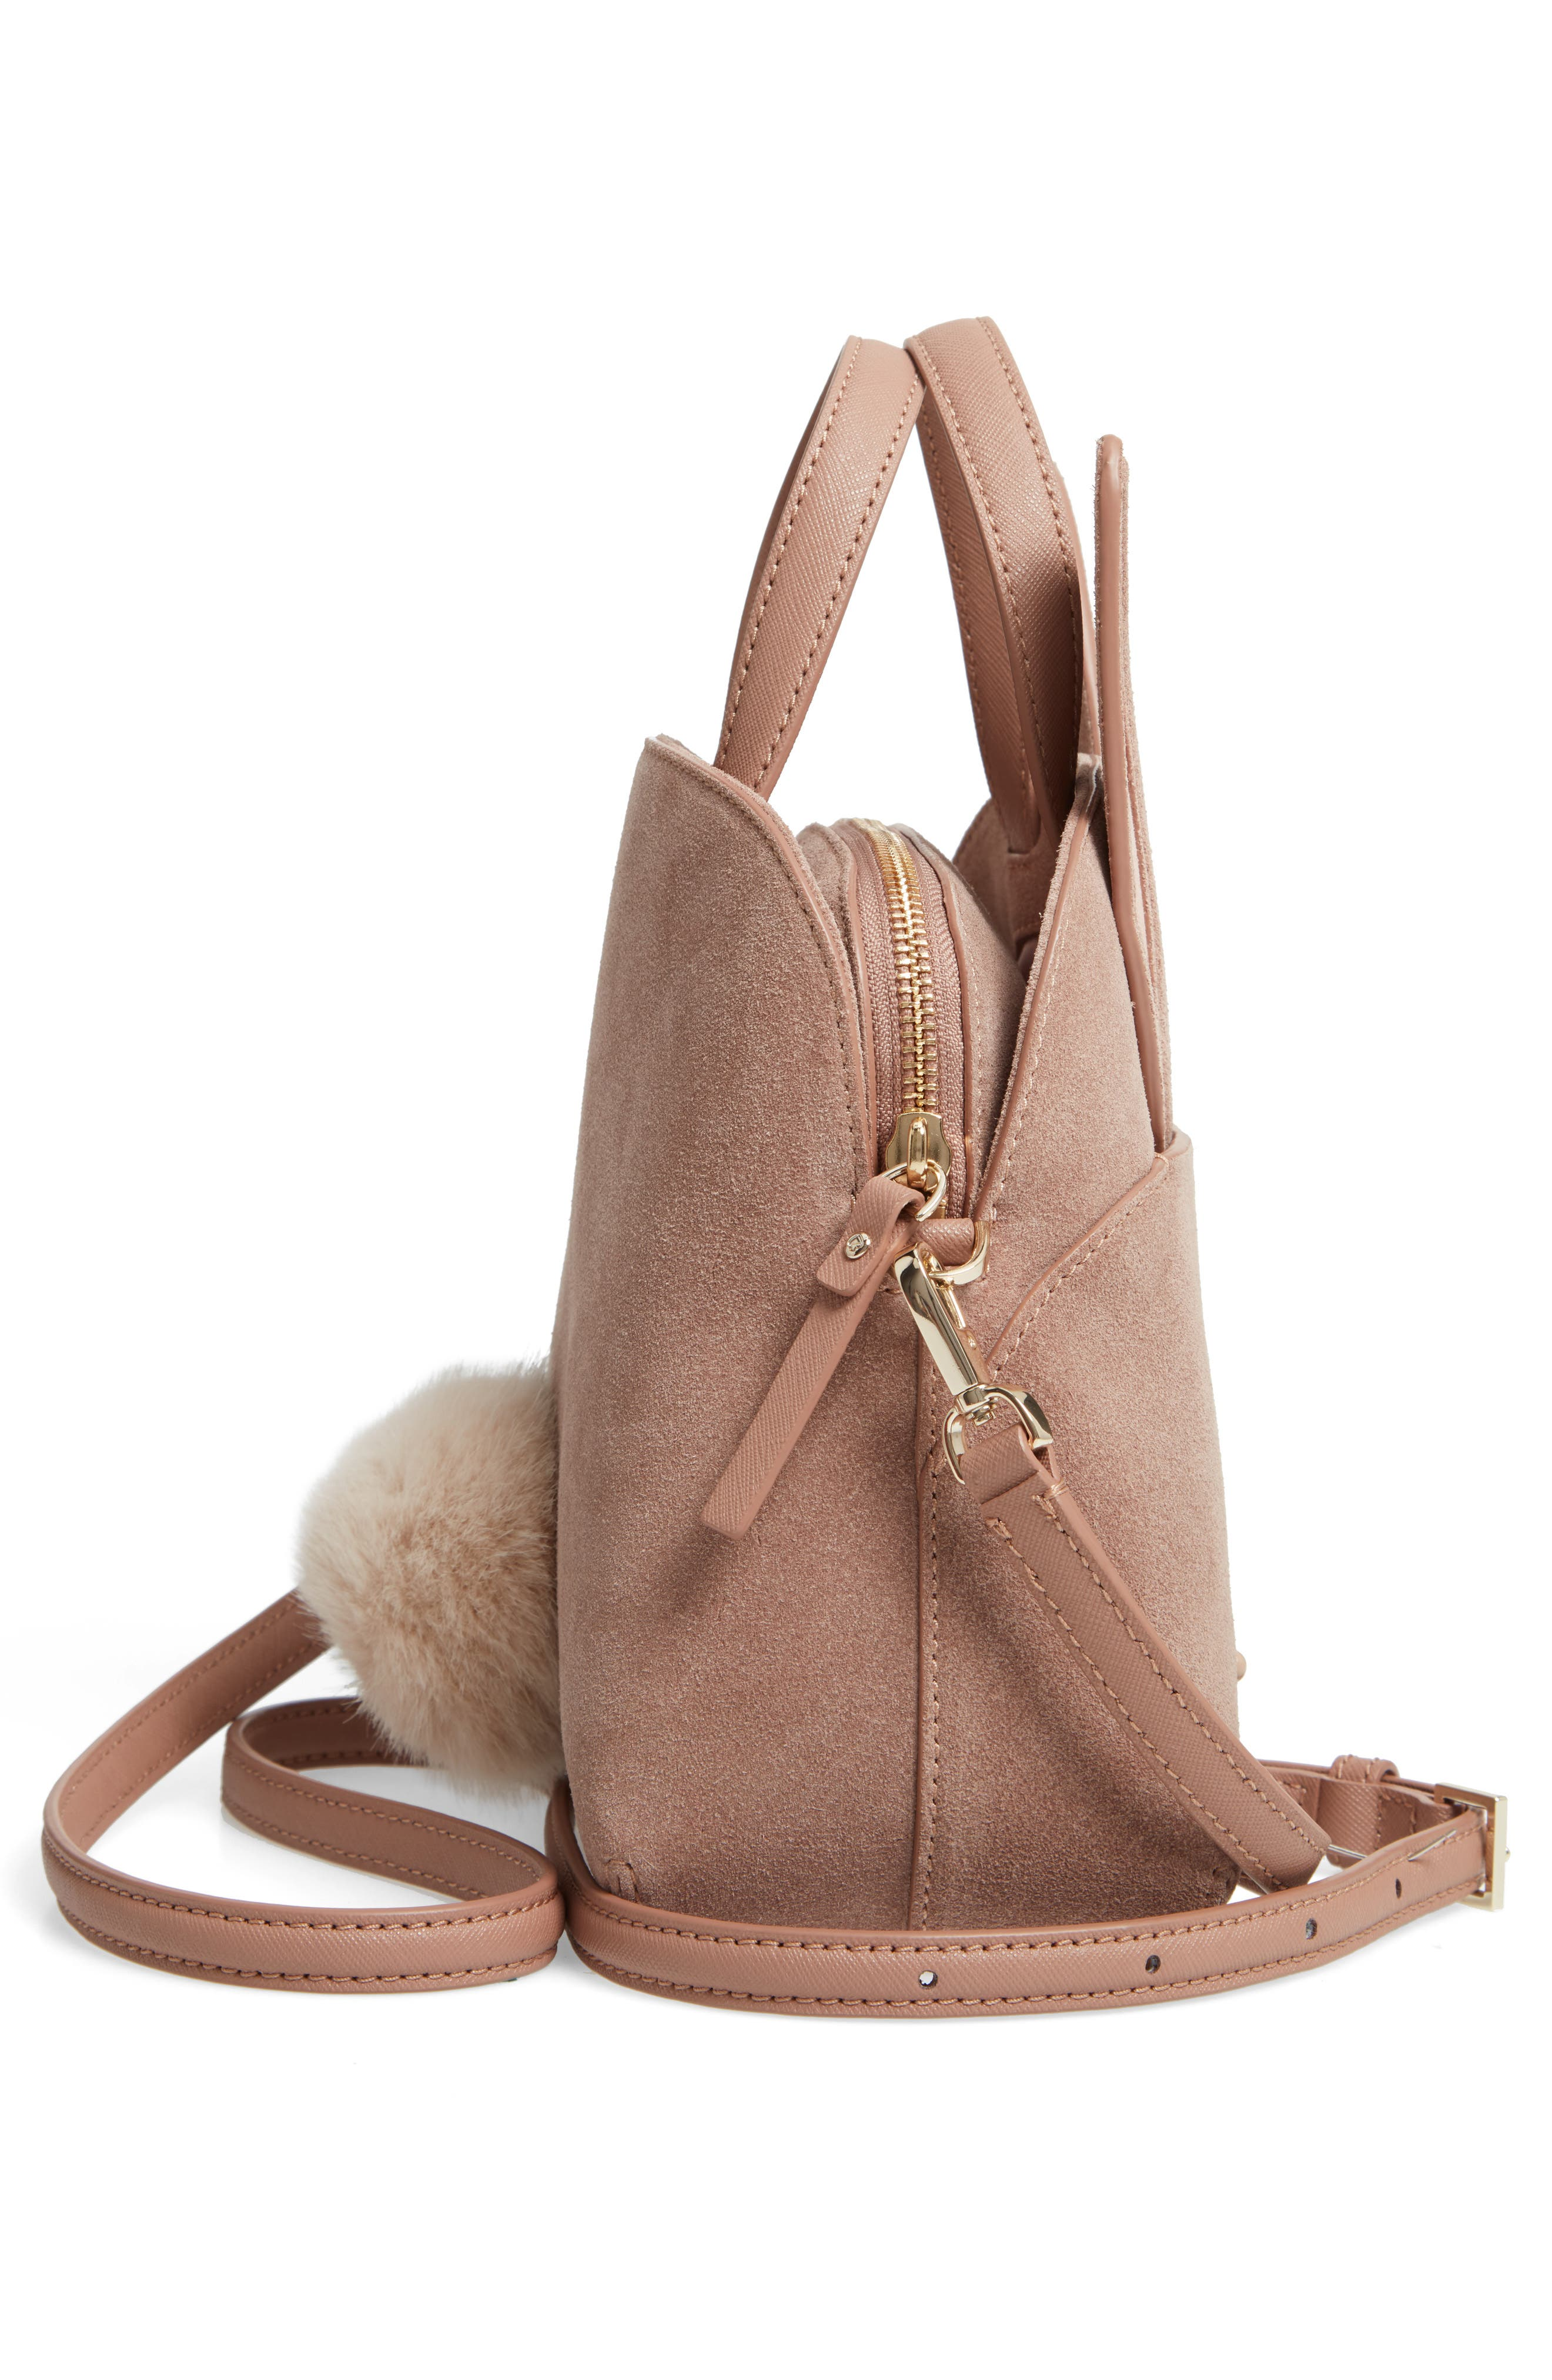 KATE SPADE NEW YORK,                             desert muse rabbit small lotti bag,                             Alternate thumbnail 5, color,                             200